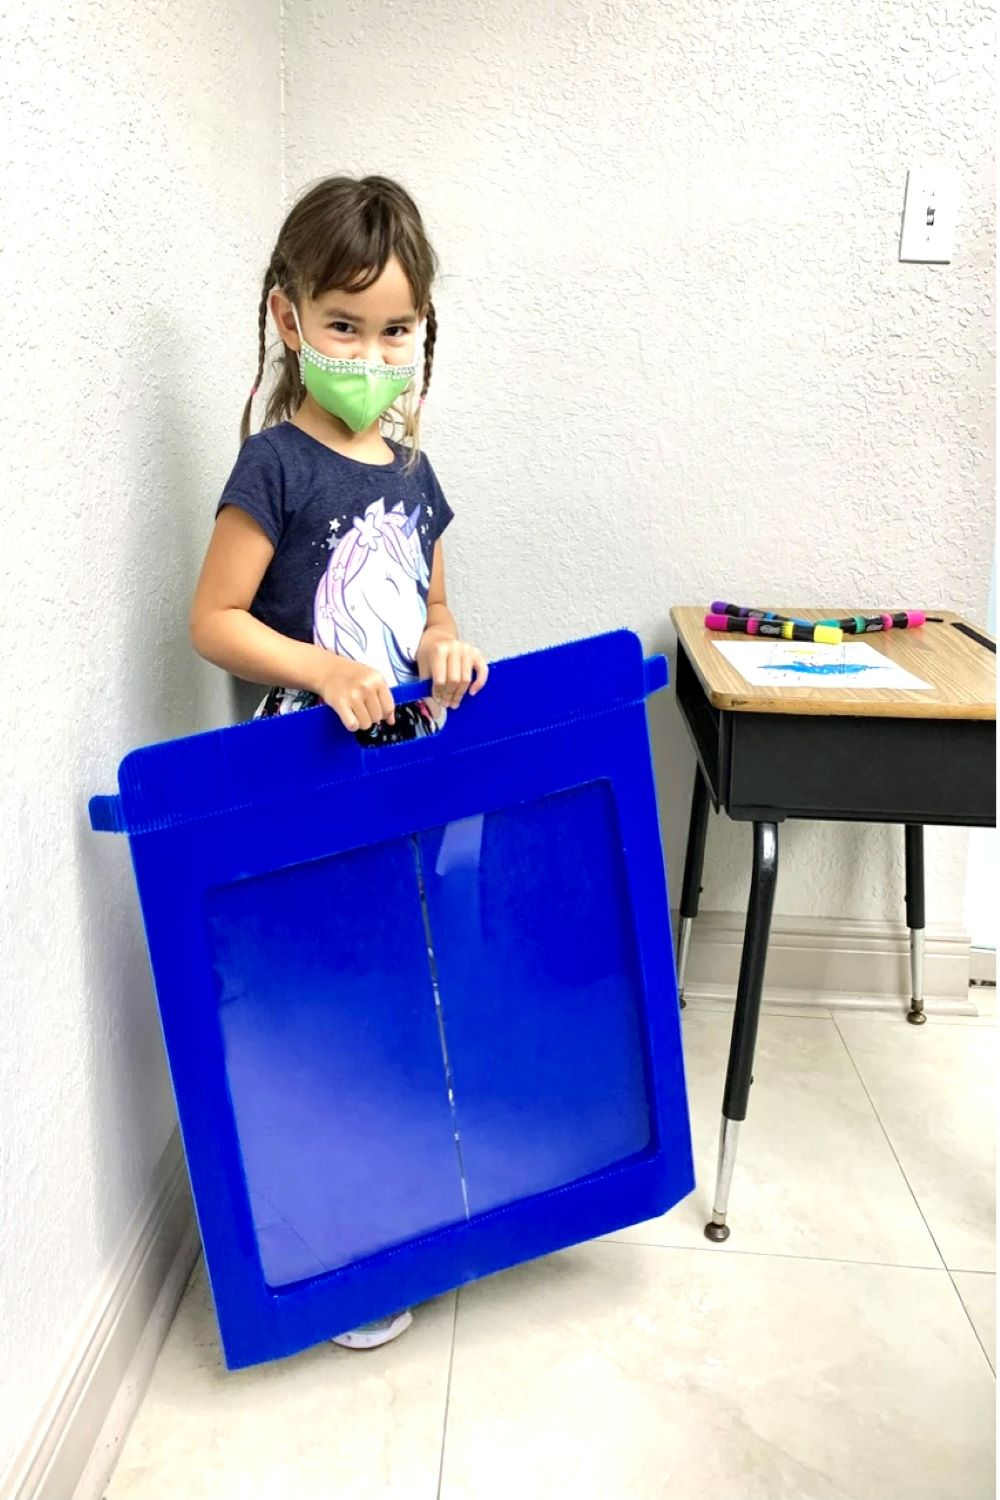 sneeze guards, productive guards, portable guards Foldable Carry-on Lightweight School Desk Sneeze and Cough Barrie LARGE - PureUps